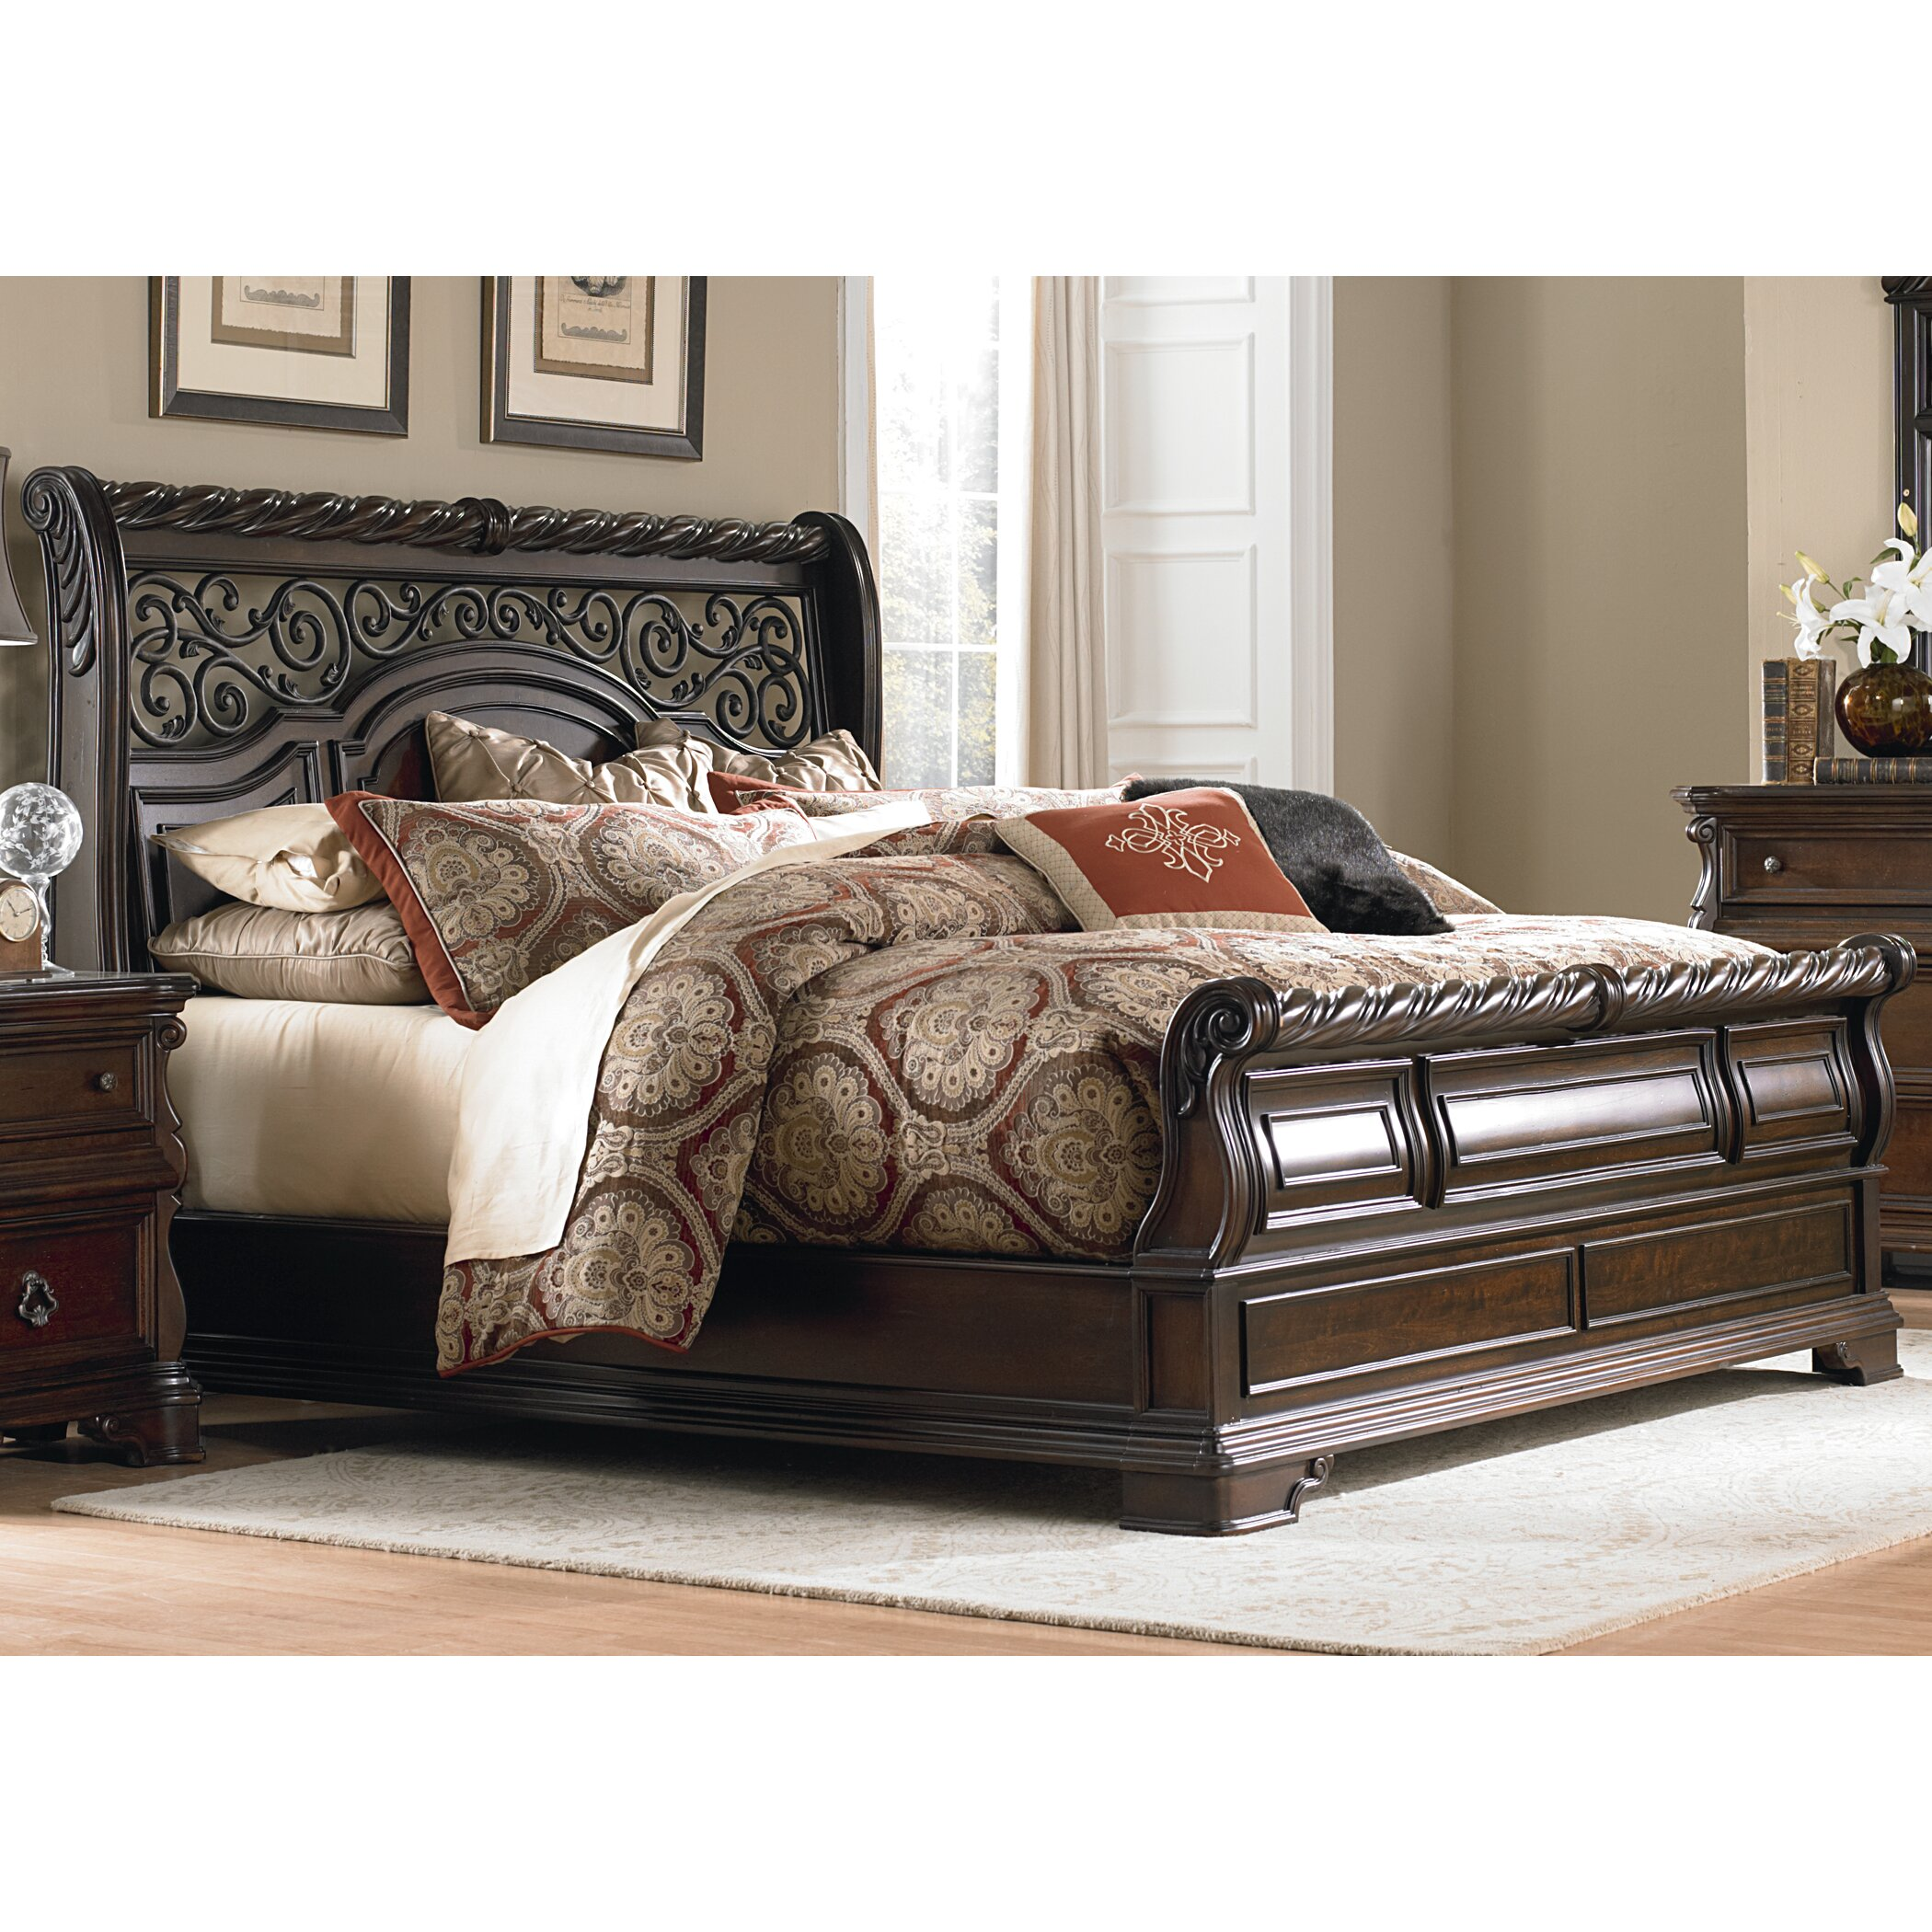 That Furniture Place: Liberty Furniture Arbor Place Customizable Bedroom Set